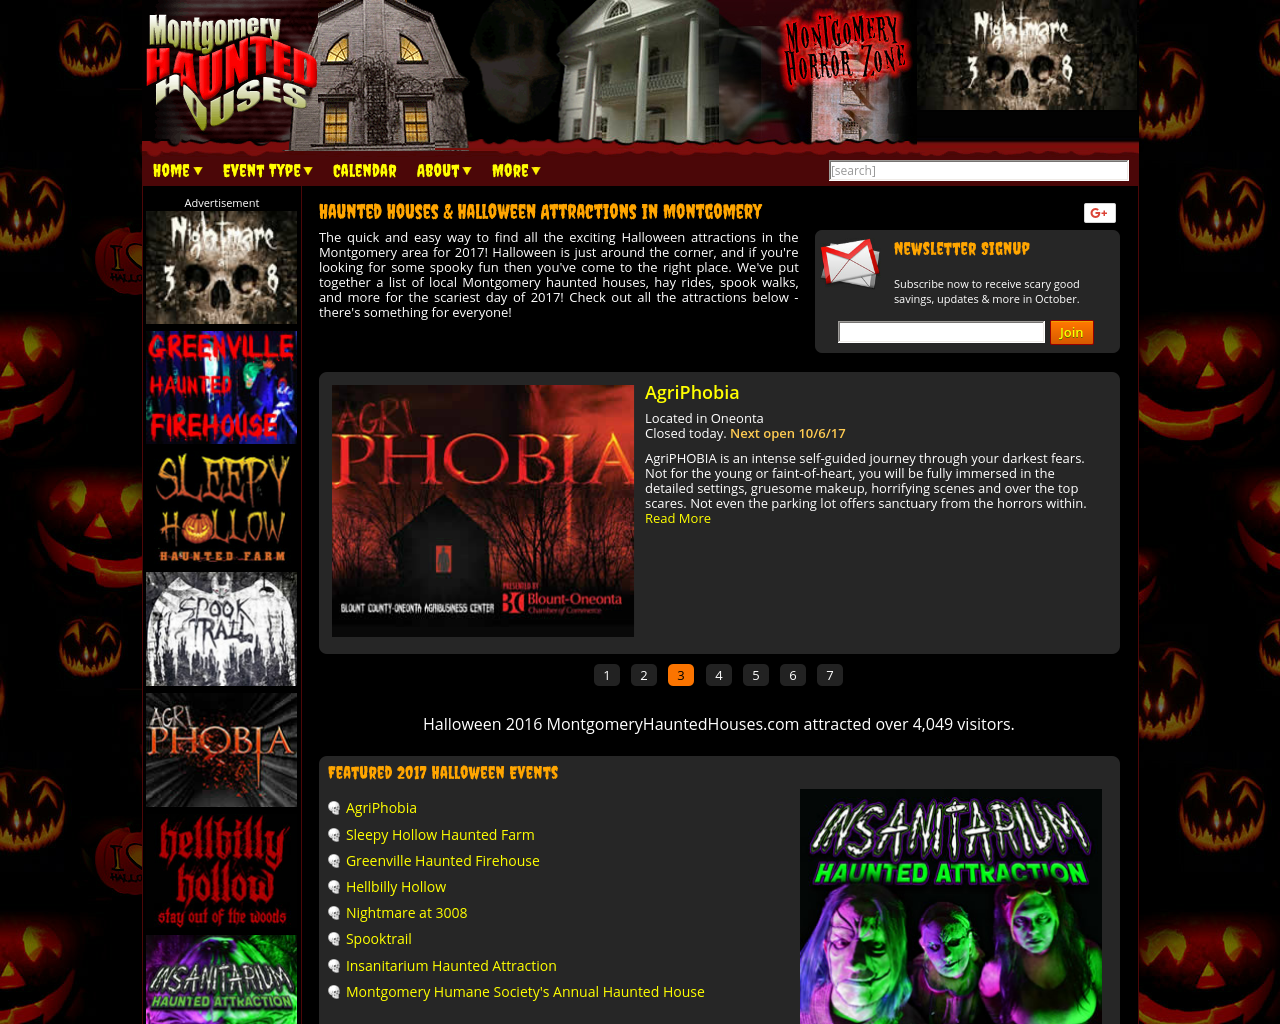 Montgomery-Haunted-Houses-Advertising-Reviews-Pricing